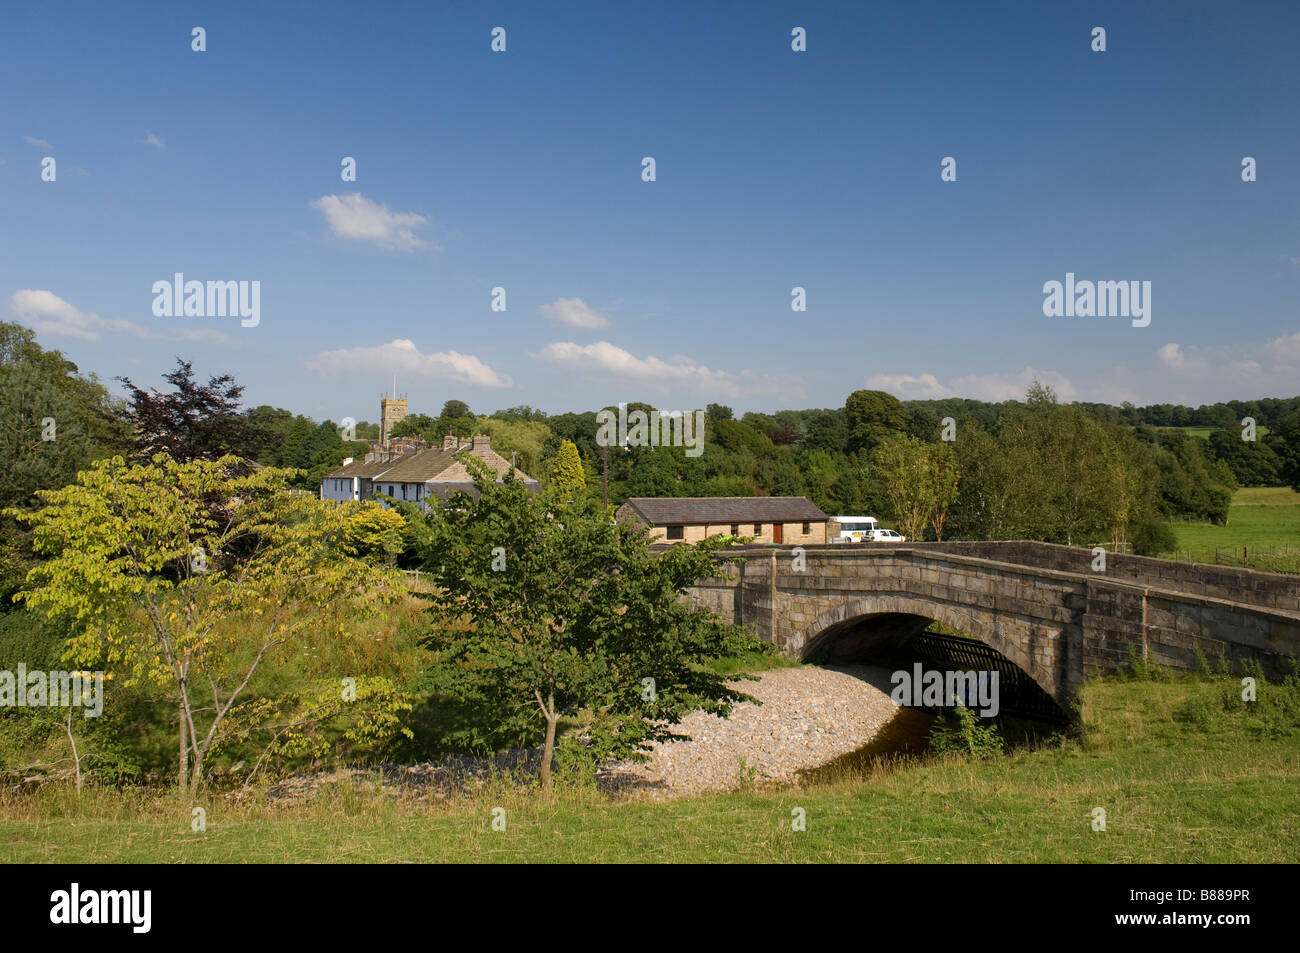 Bolton by Bowland in the Ribble Valley Lancashire in North West England - Stock Image